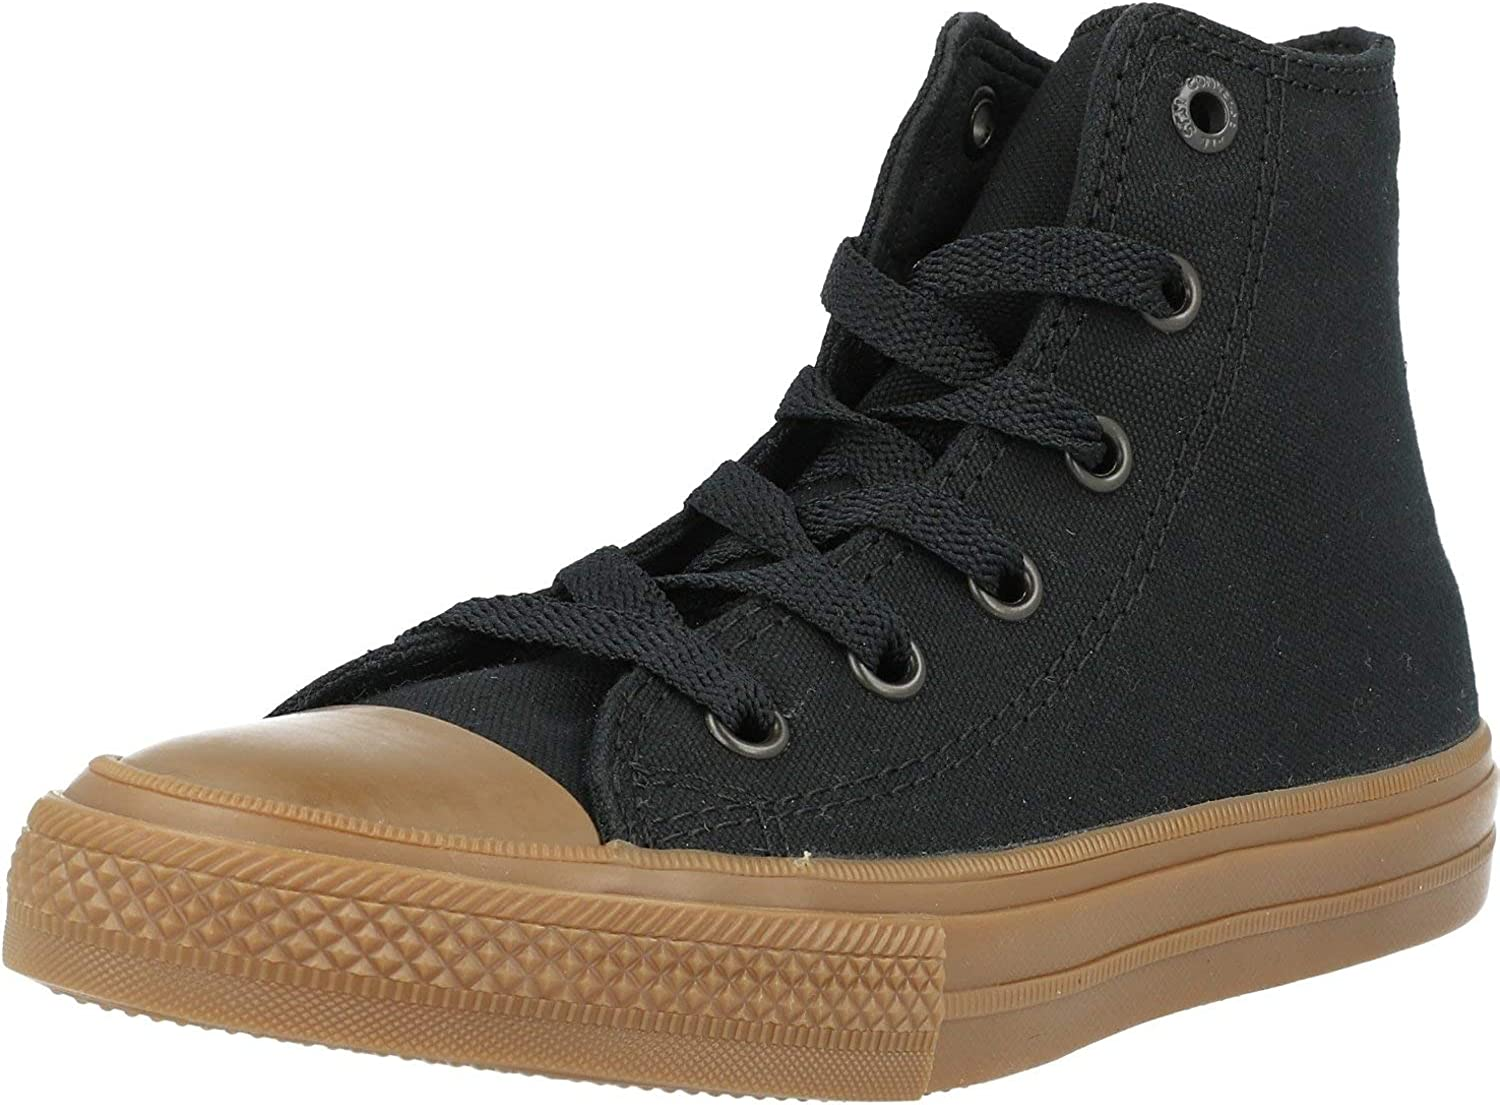 Converse Chuck Taylor All Star Ii Hi Toddler Trainers